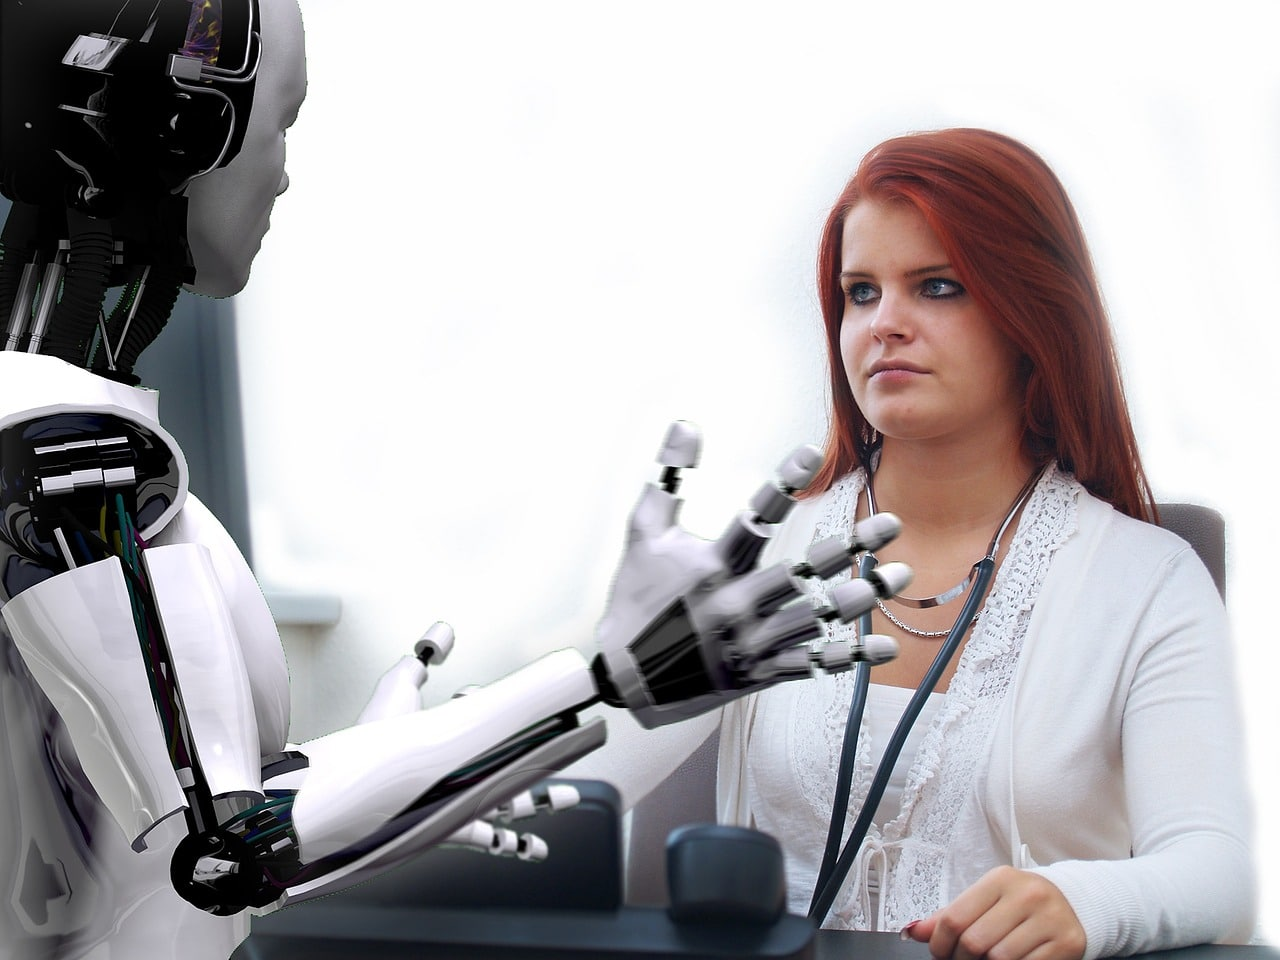 robot-working-with-human-alignthoughts